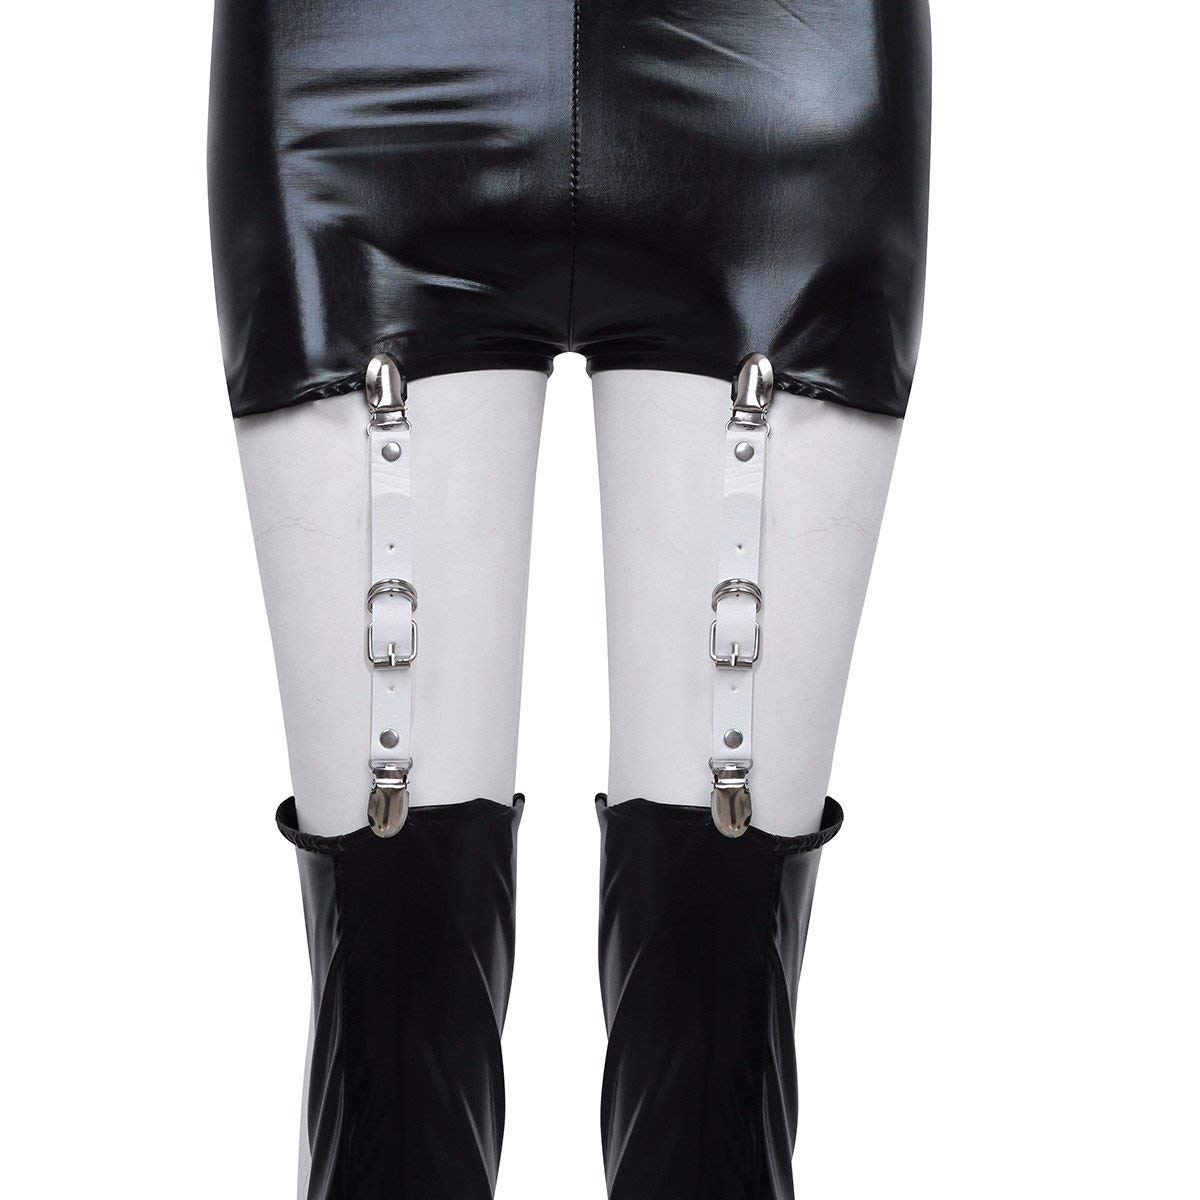 c57316fd510 Get Quotations · FEESHOW 4PCS Garter Belts Shirt Stays Holders Socks  Fasteners Suspenders with Locking Clamps